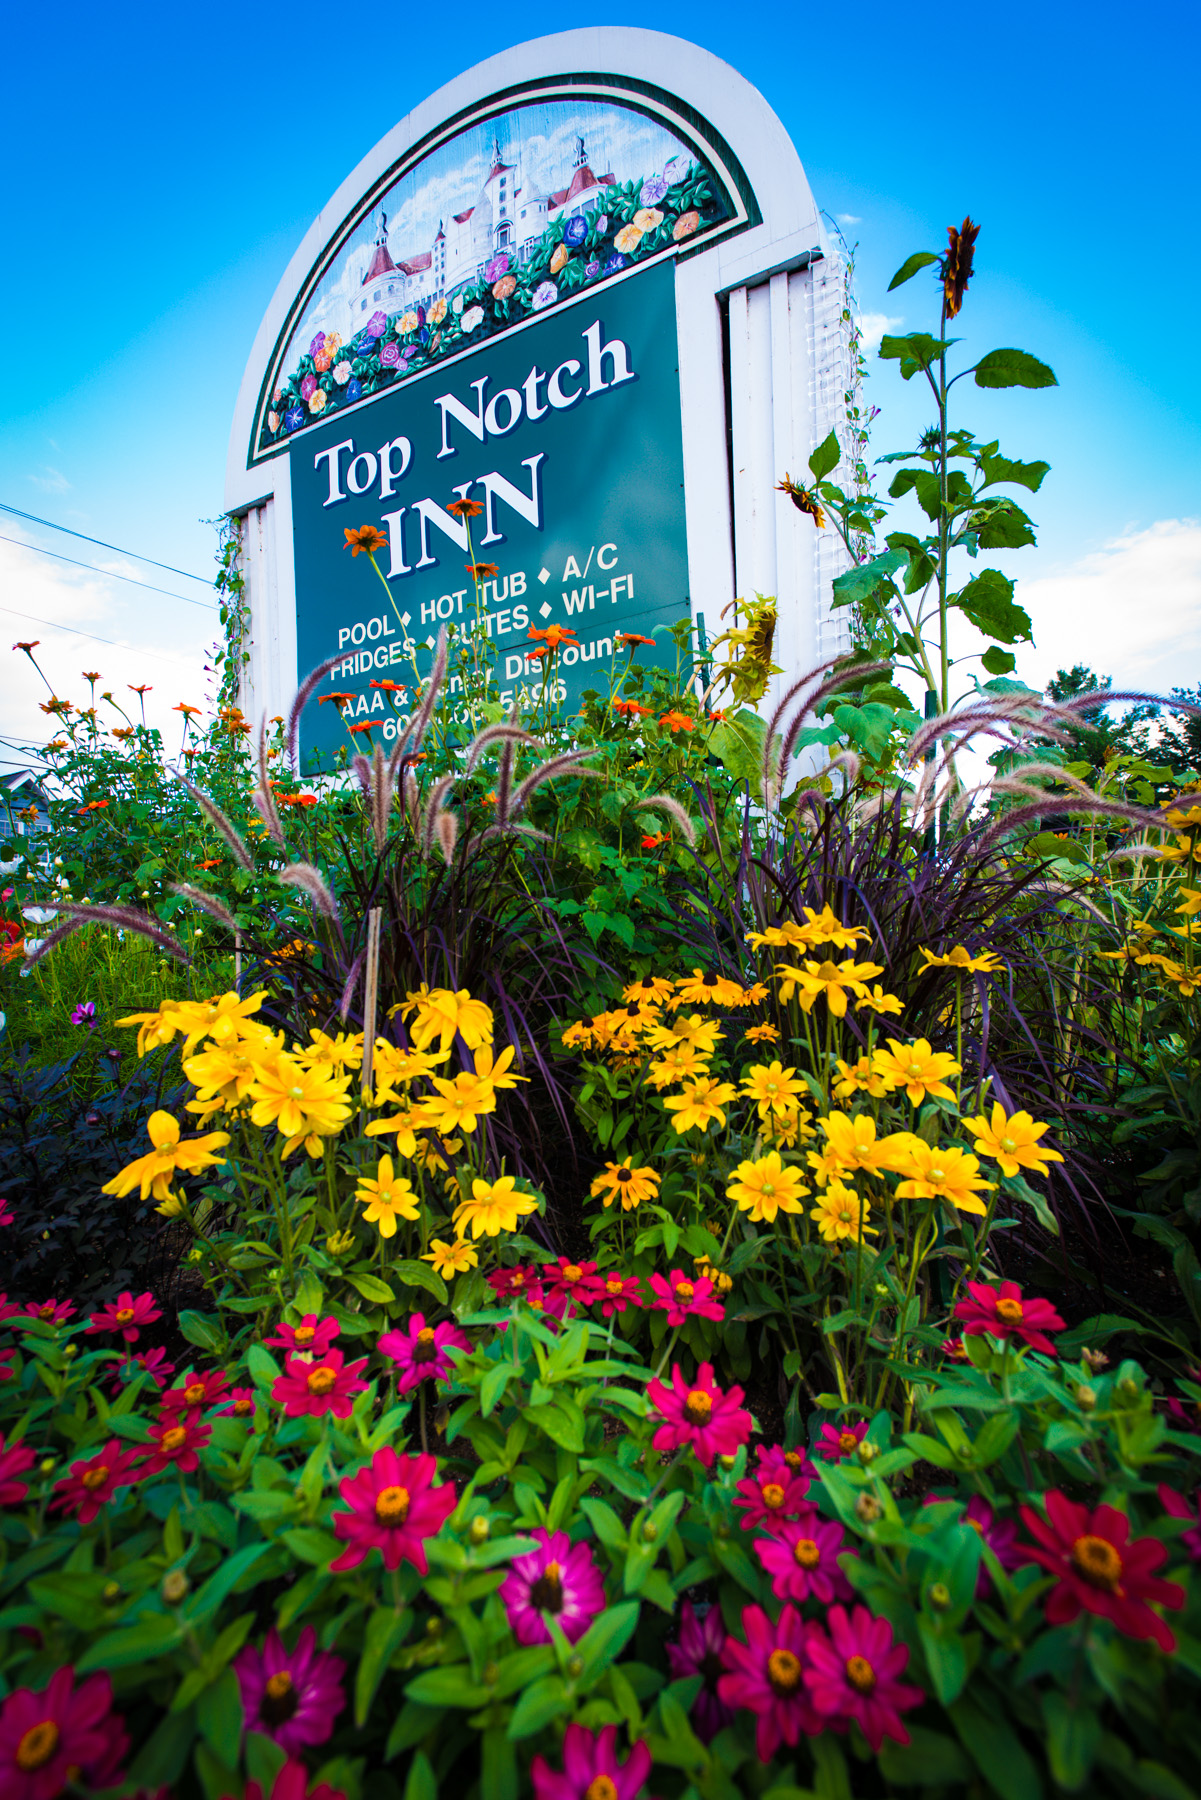 Top Notch Inn, Gorham NH